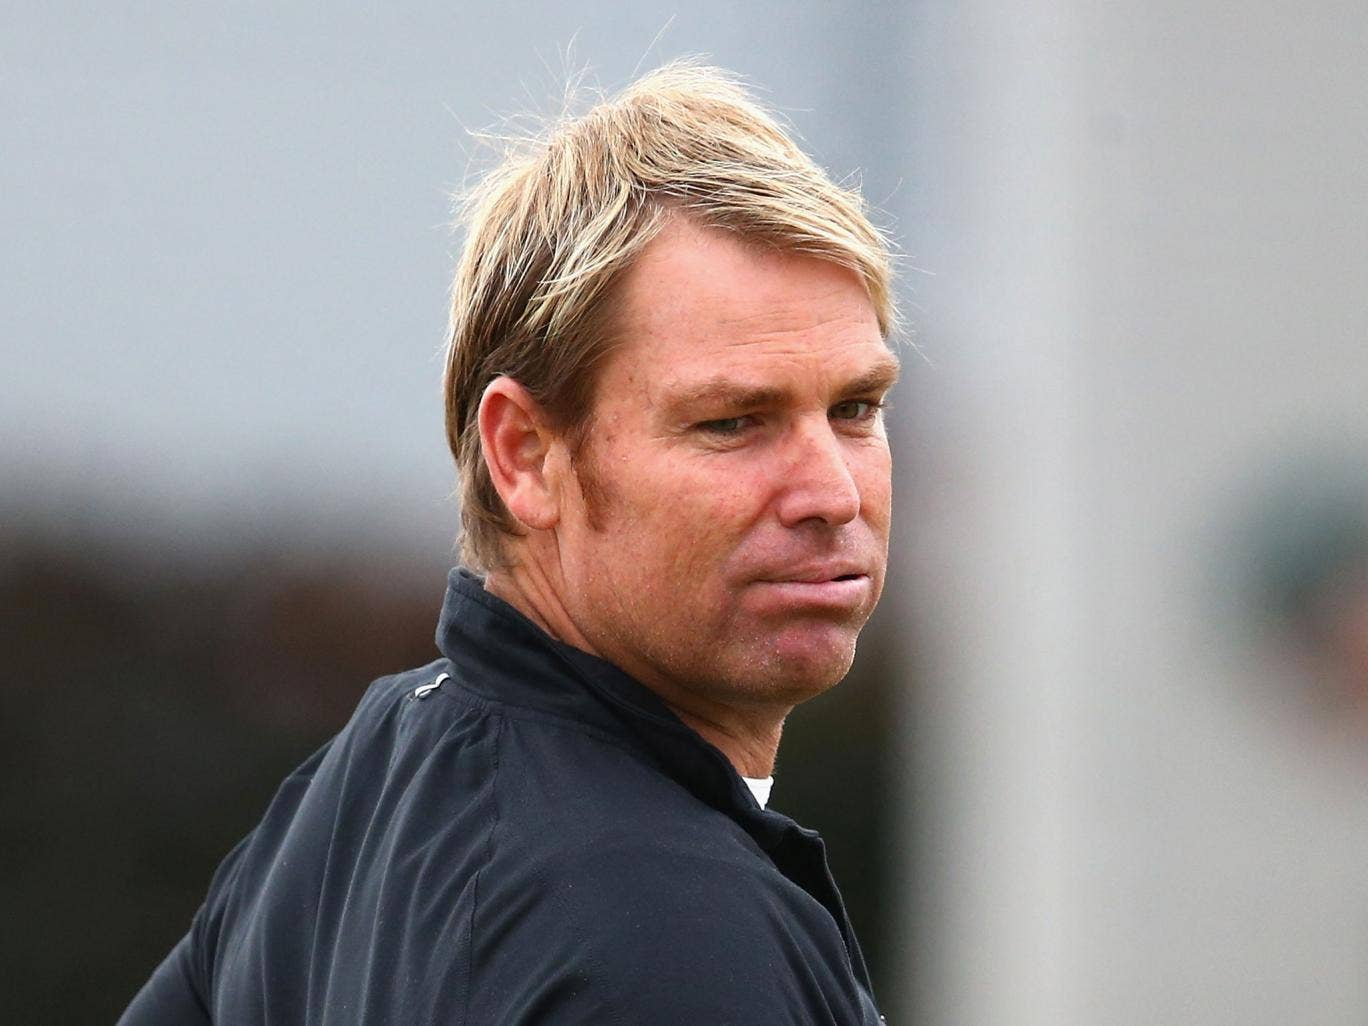 Shane Warne said Australia's Michael Clarke was 'the best captain in the world now'